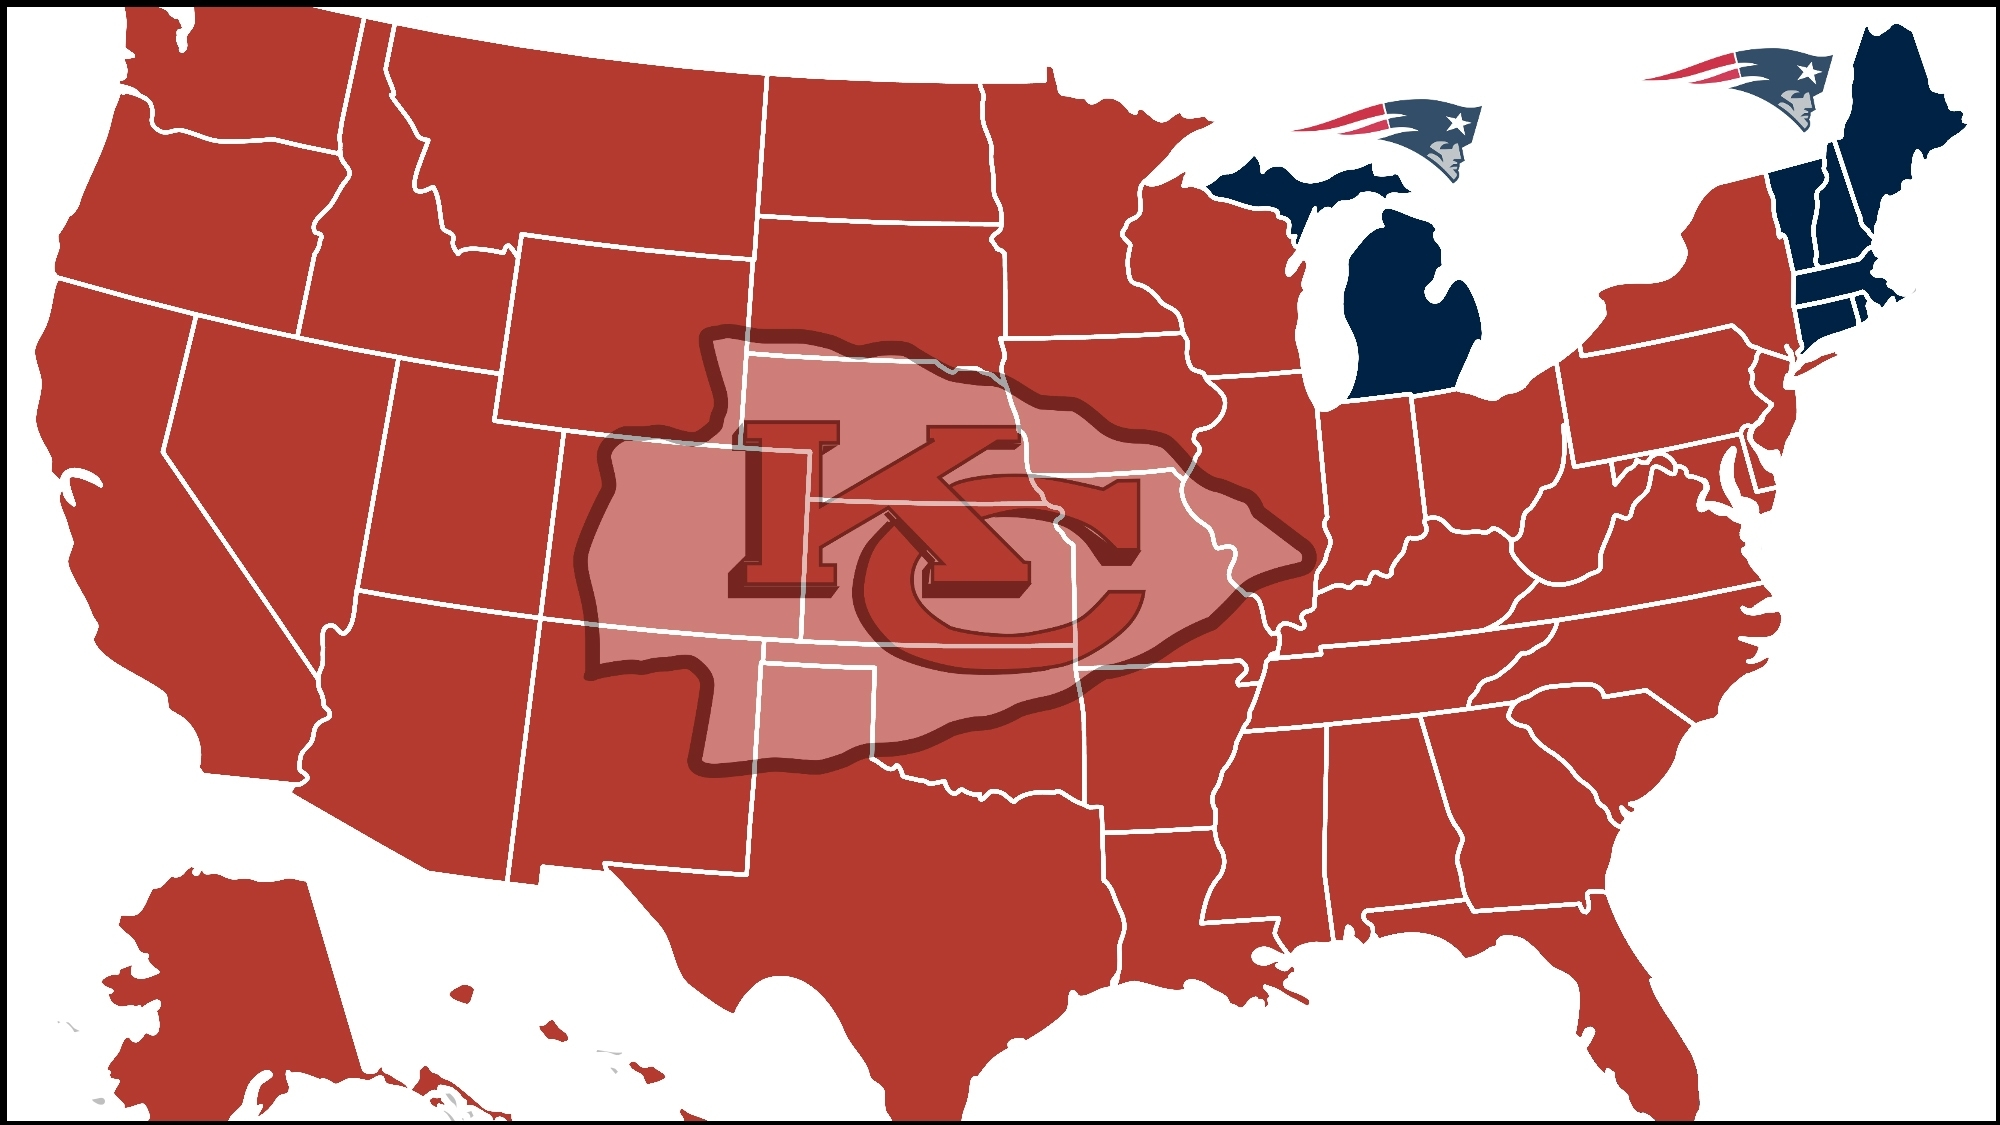 Almost Entire Country Will Be Rooting Against Patriots In pertaining to Map Of Patriots Fans For Super Bowl